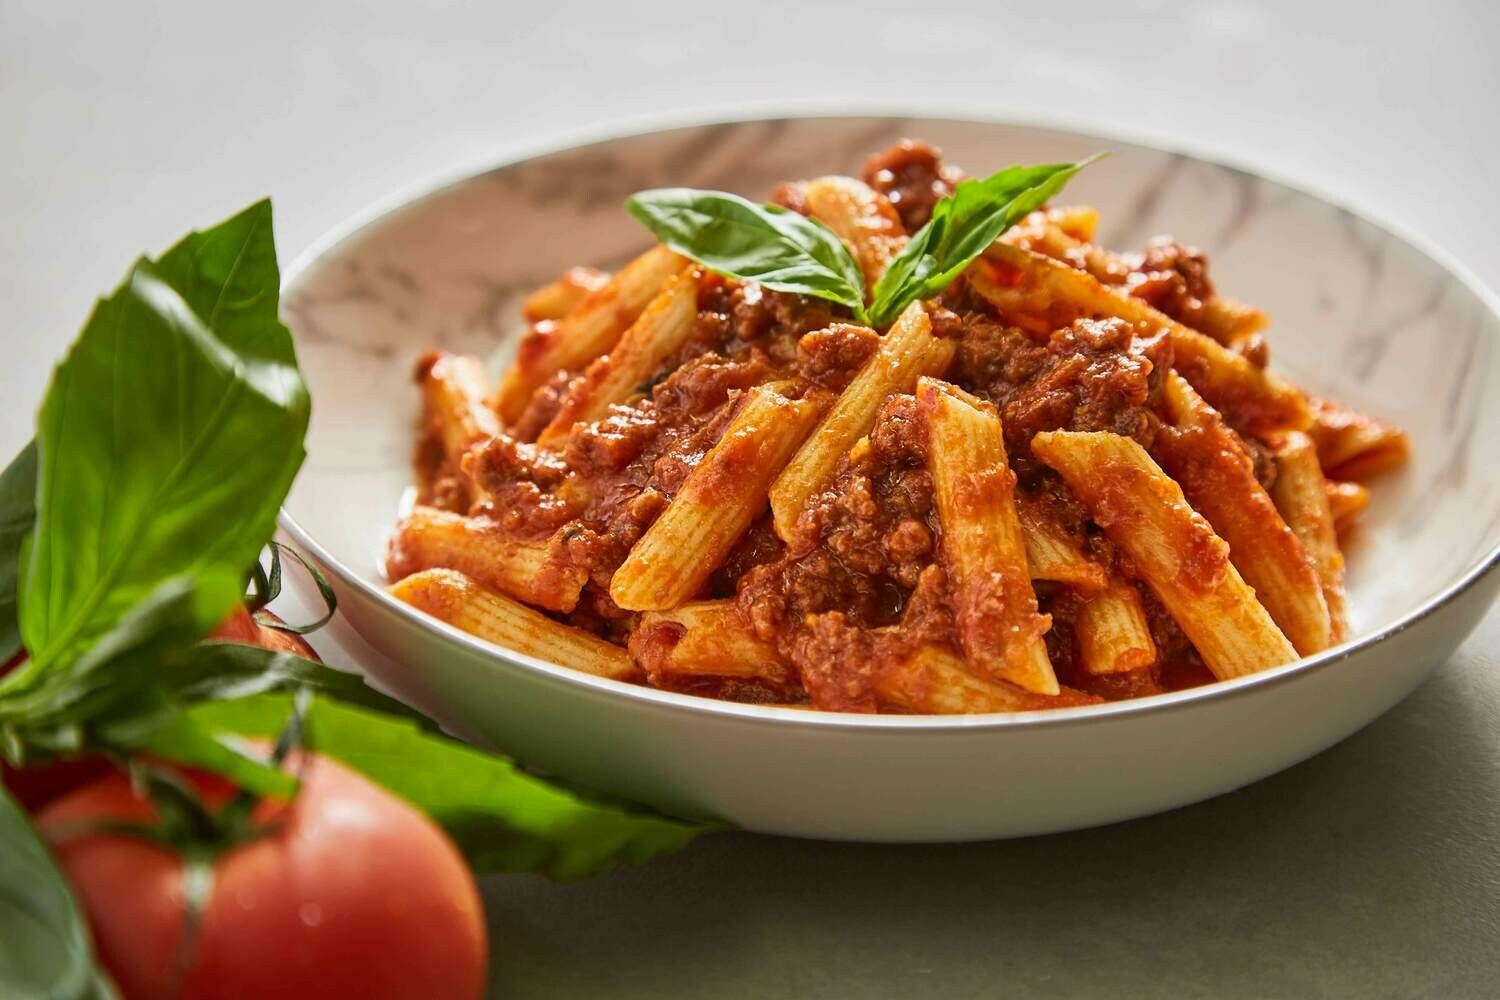 Homemade Pasta Bolognese (Available as GF)